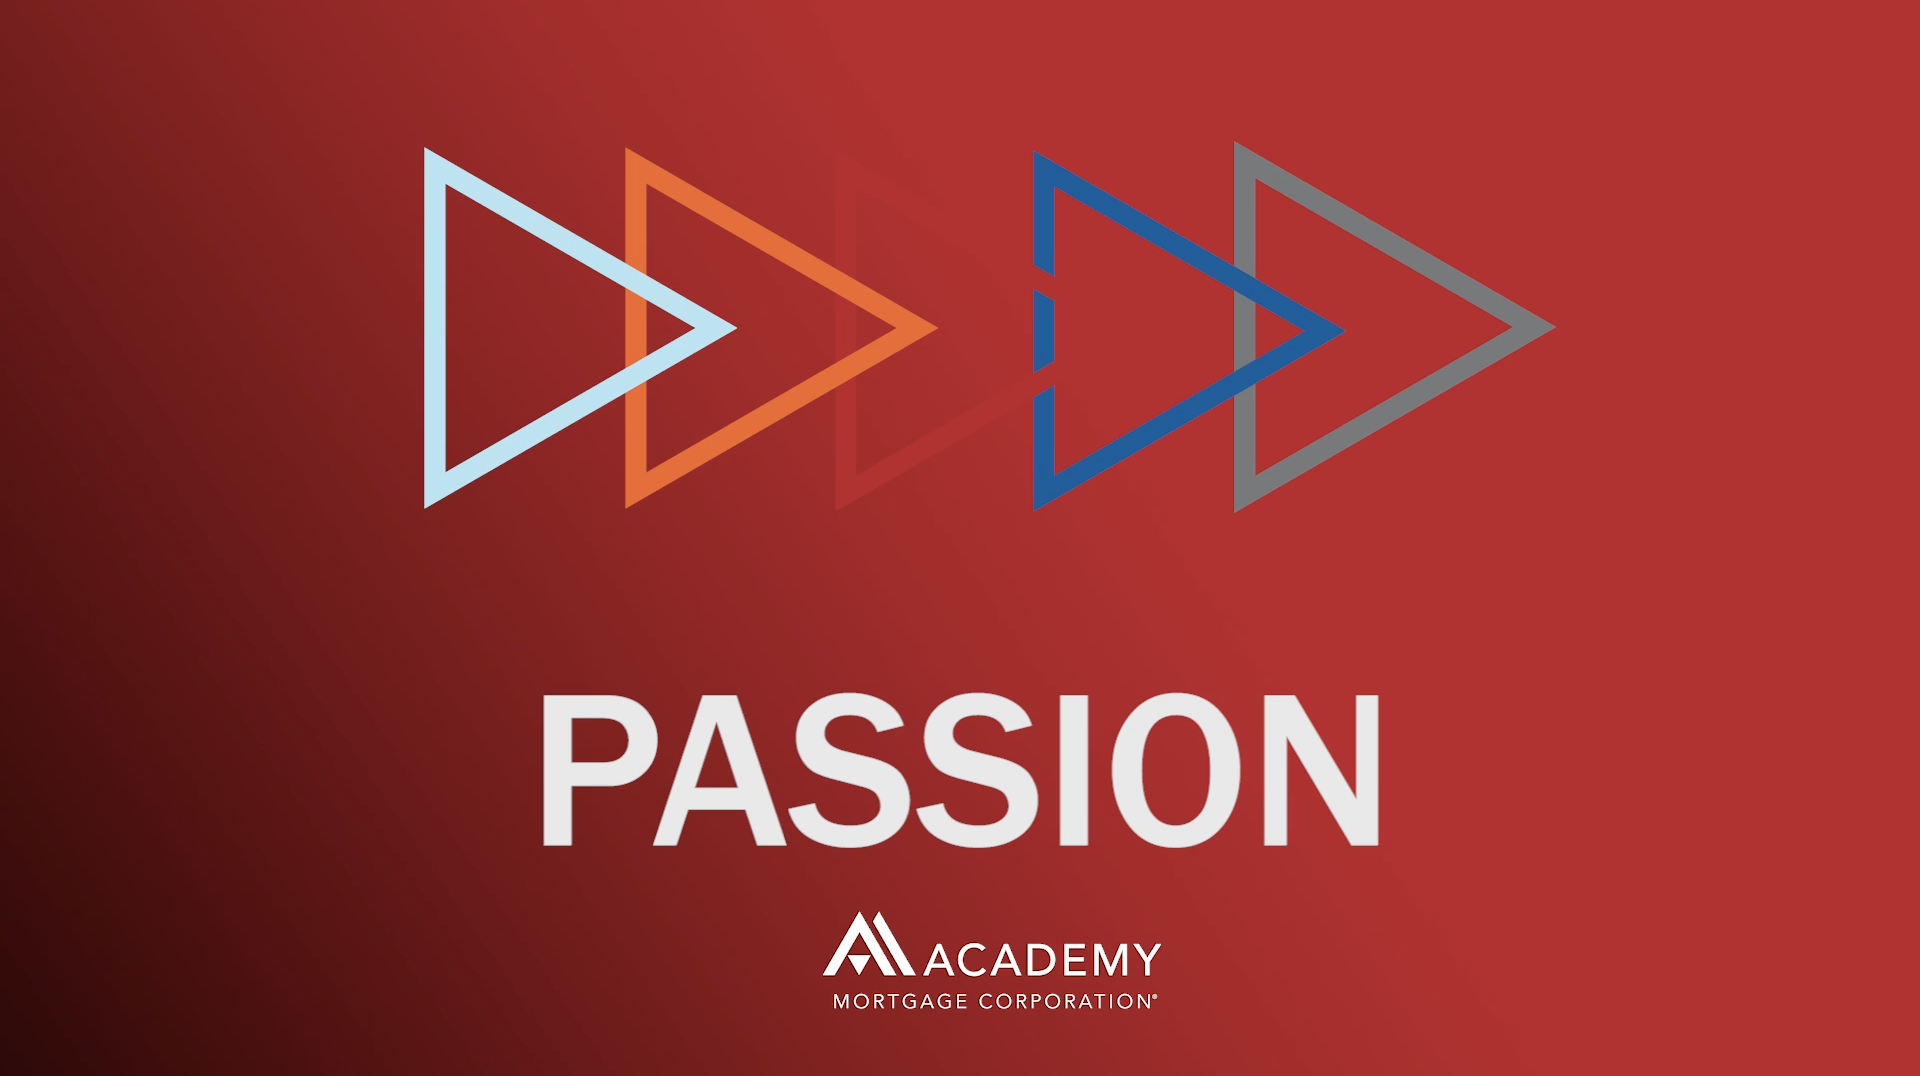 Academy's 5 Ps: Passion